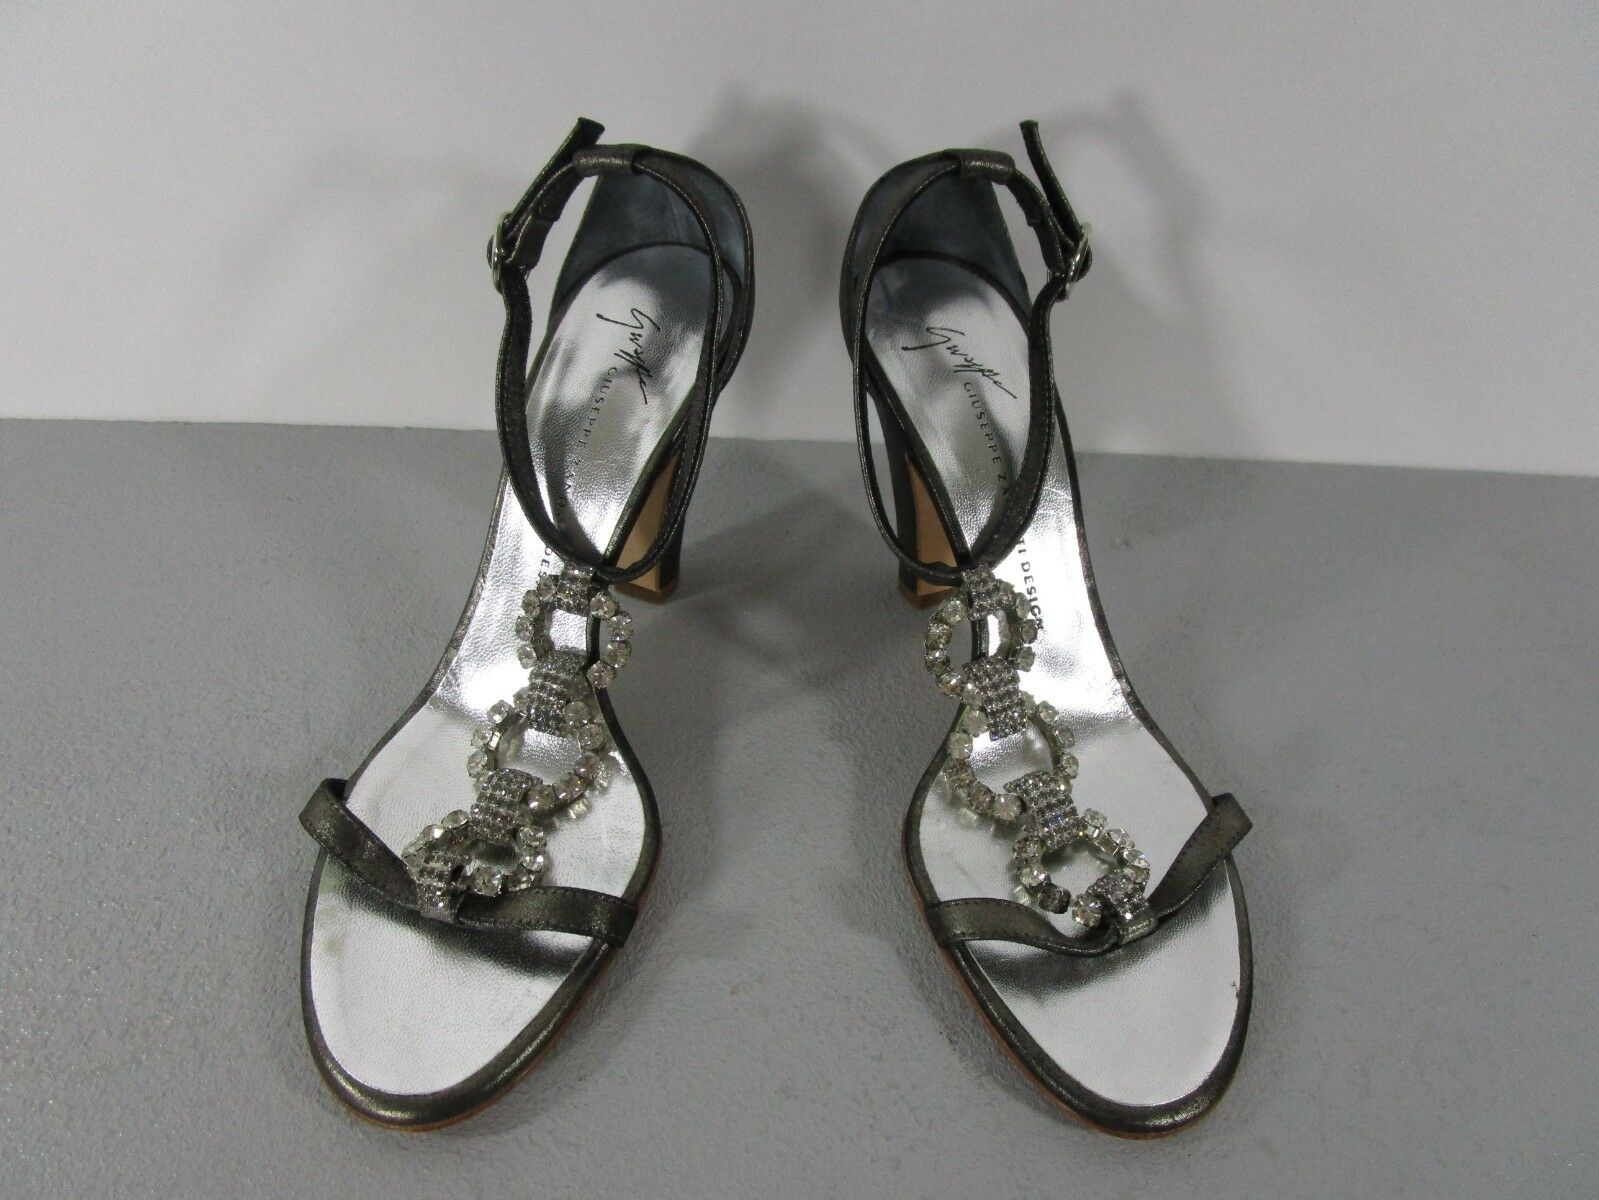 GIUSEPPE ZANOTTI Crystal Jewel Vamp Ankle Strap Strap Ankle Pewter Heels Size 36 1/2 5ee609